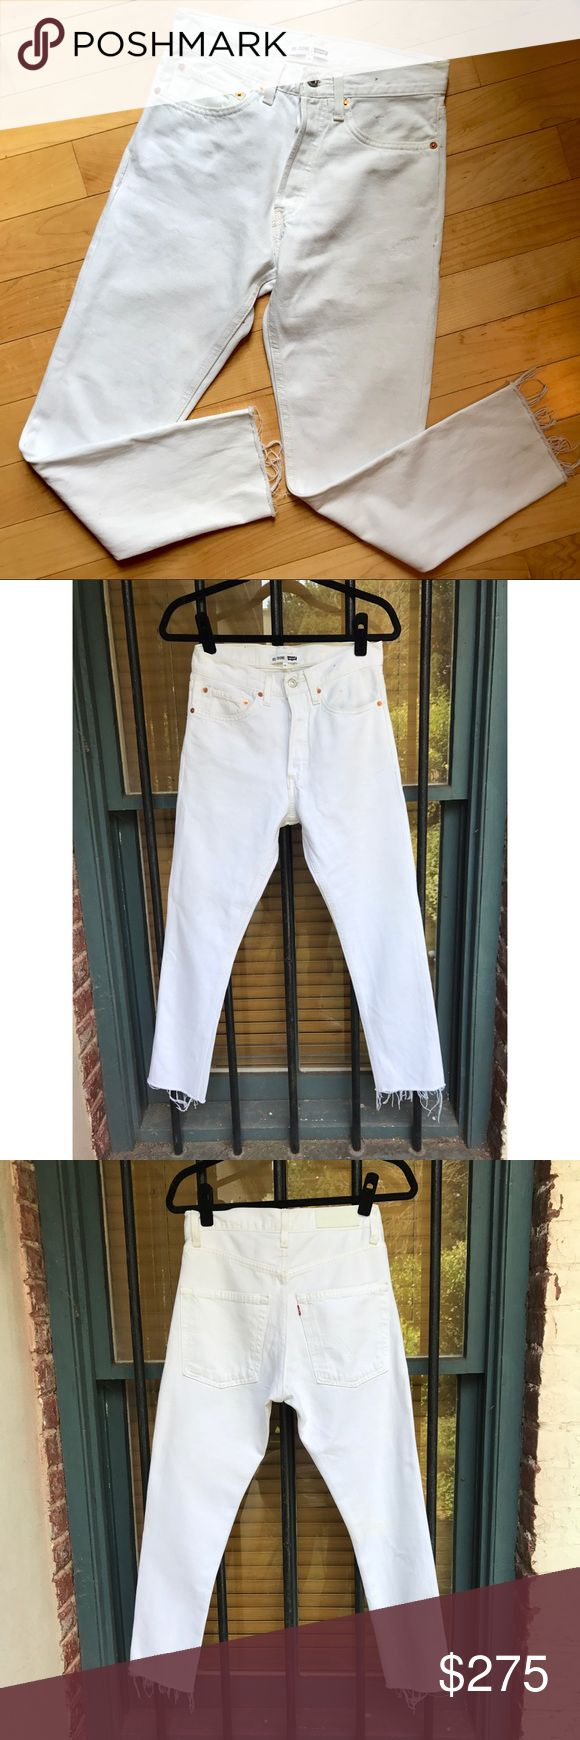 "NWOT Re/Done Levis High Rise Ankle Crop in White! NEW without tags Limited edition ReDone Levi's High waisted ankle Crop jeans in white out!!!!  you won't find these online because they were such a limited run. Perfectly rebuilt vintage Levis, for a vintage look and a modern fit. These retailed online for $325! Never been worn. Cropped and frayed (but finished) hem at the ankles.   Waist: 14"" Rise: 11"" Inseam: 26"" Outseam: 35.5""  These are literally PERFECTION and are designed to make your…"